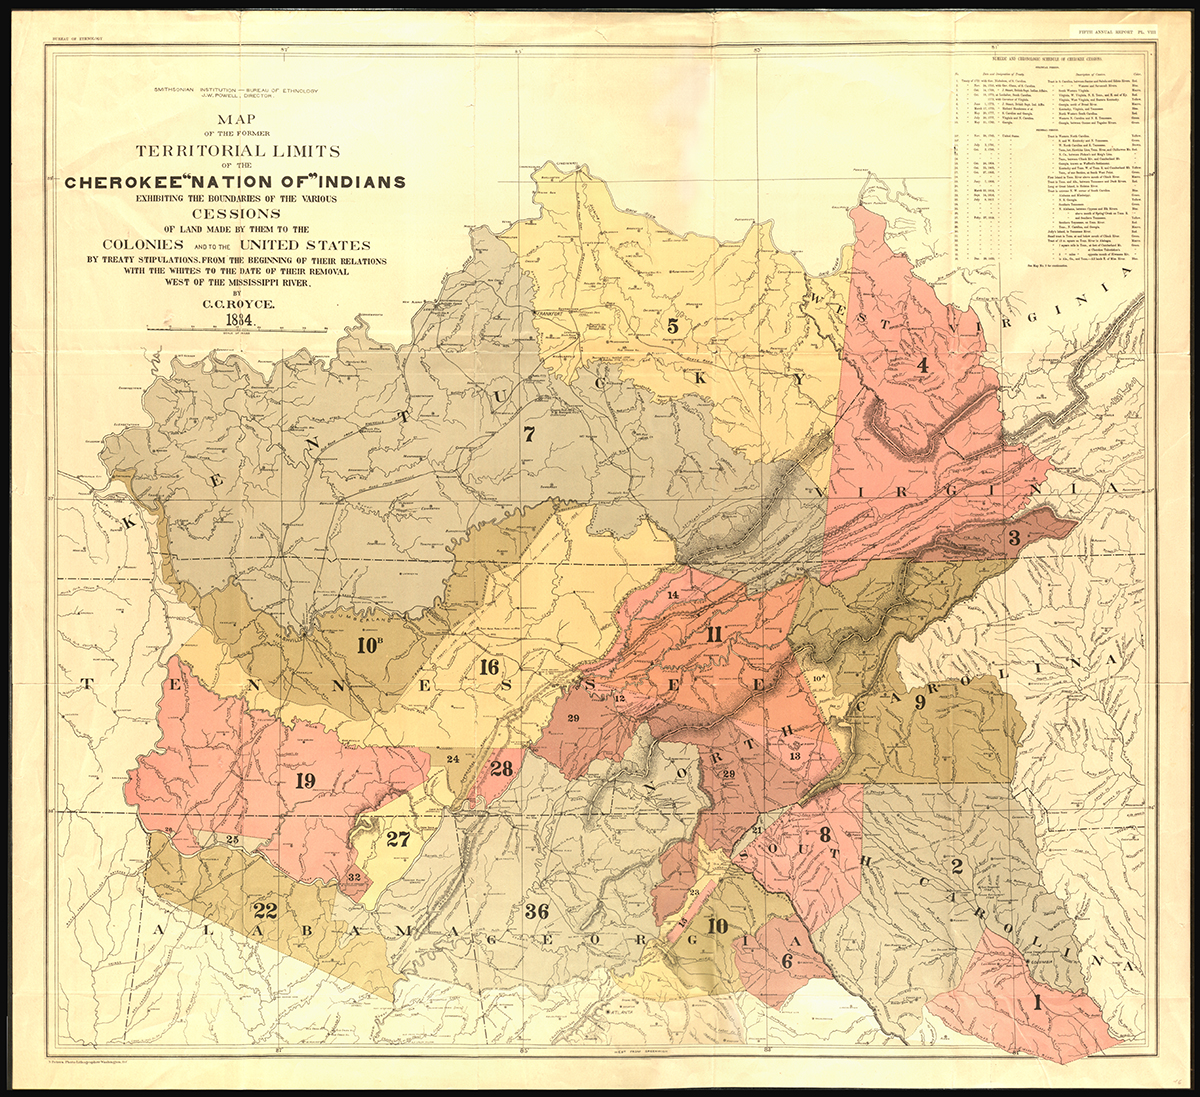 Map of Former Territorial Limits of the Cherokee 'Nation of' Indians